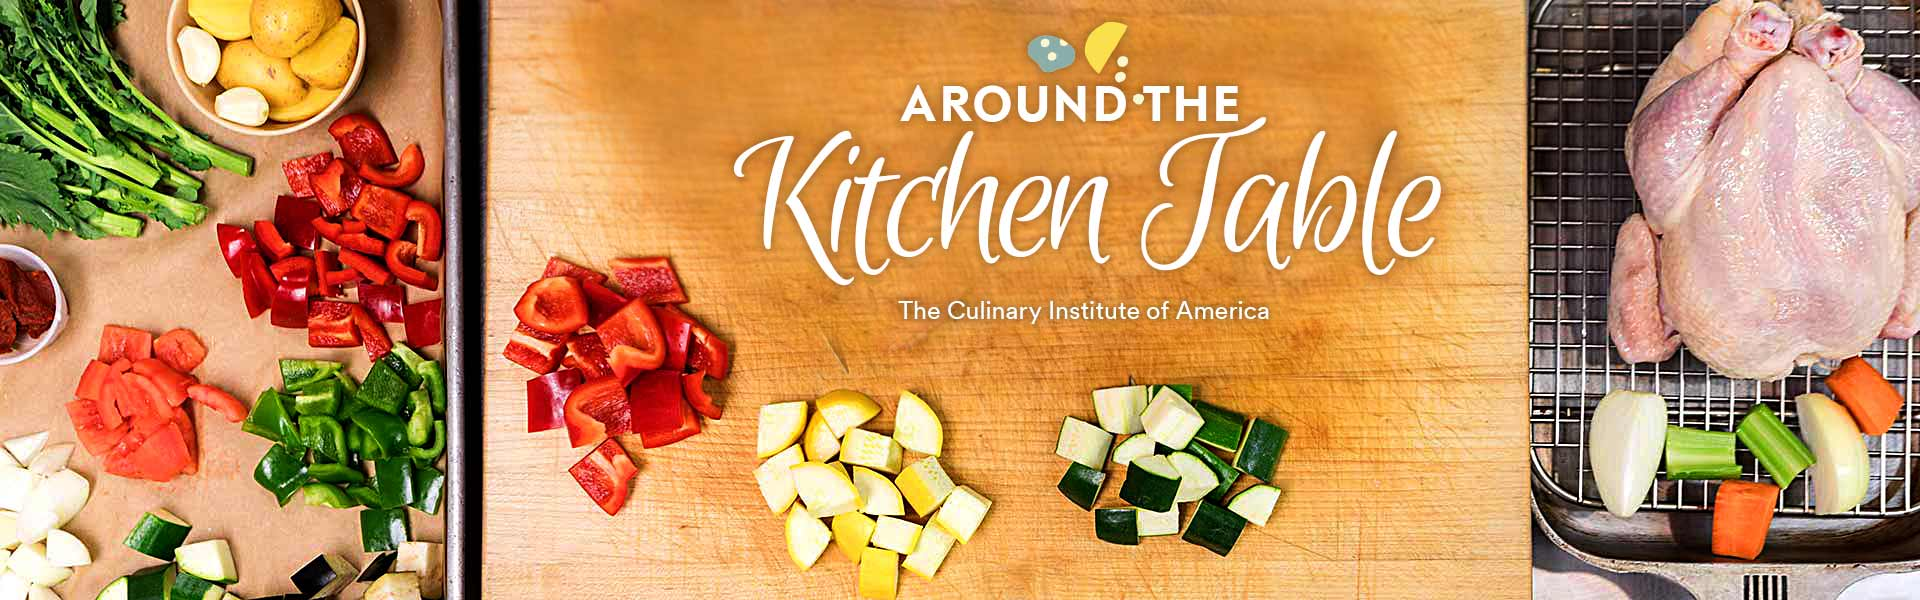 Around the Kitchen Table - A Virtual Series Featuring CIA Alumni Chefs